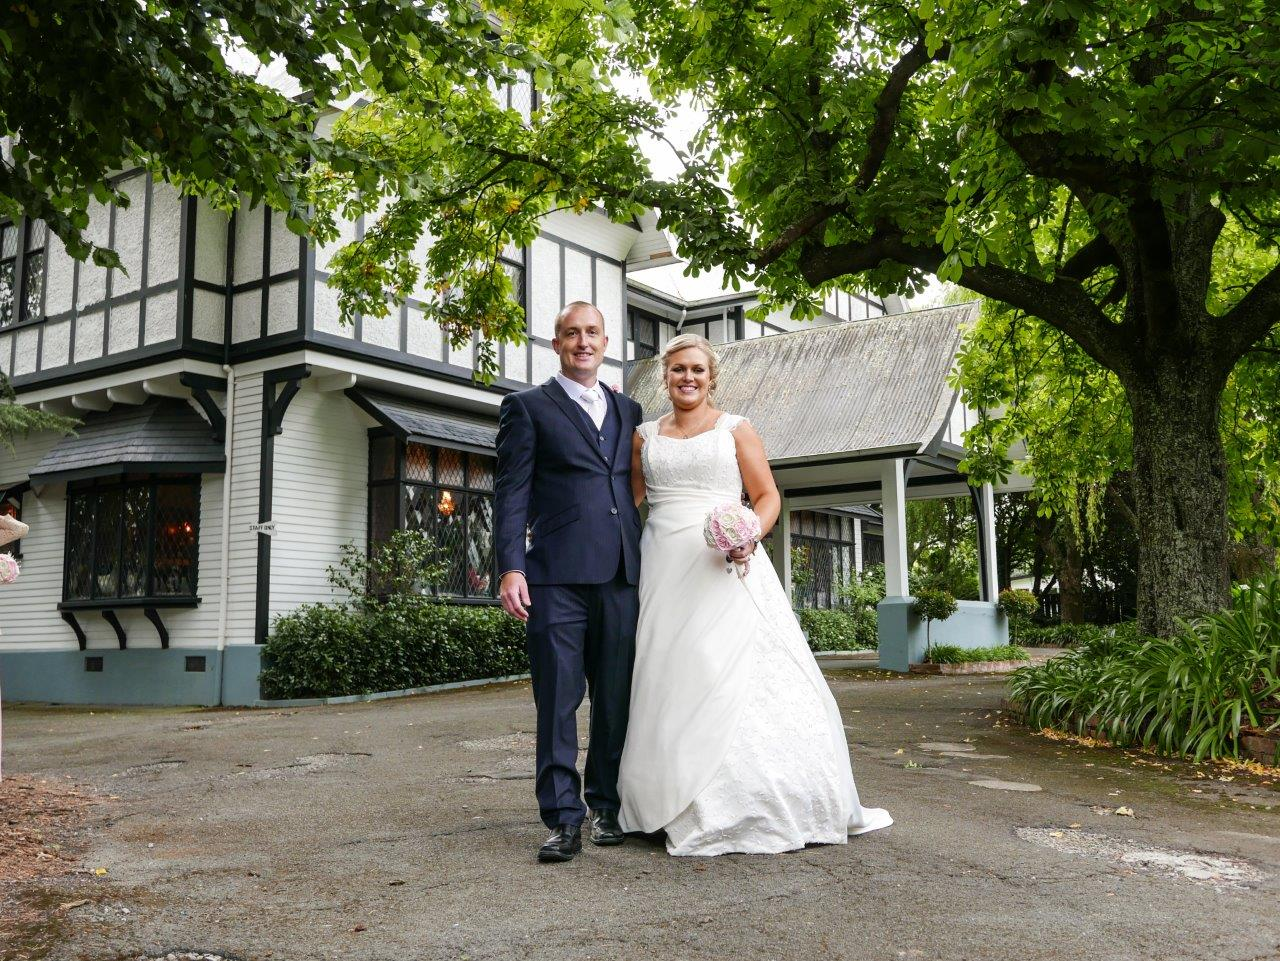 Wedding Venue In The Wairarapa Masterton